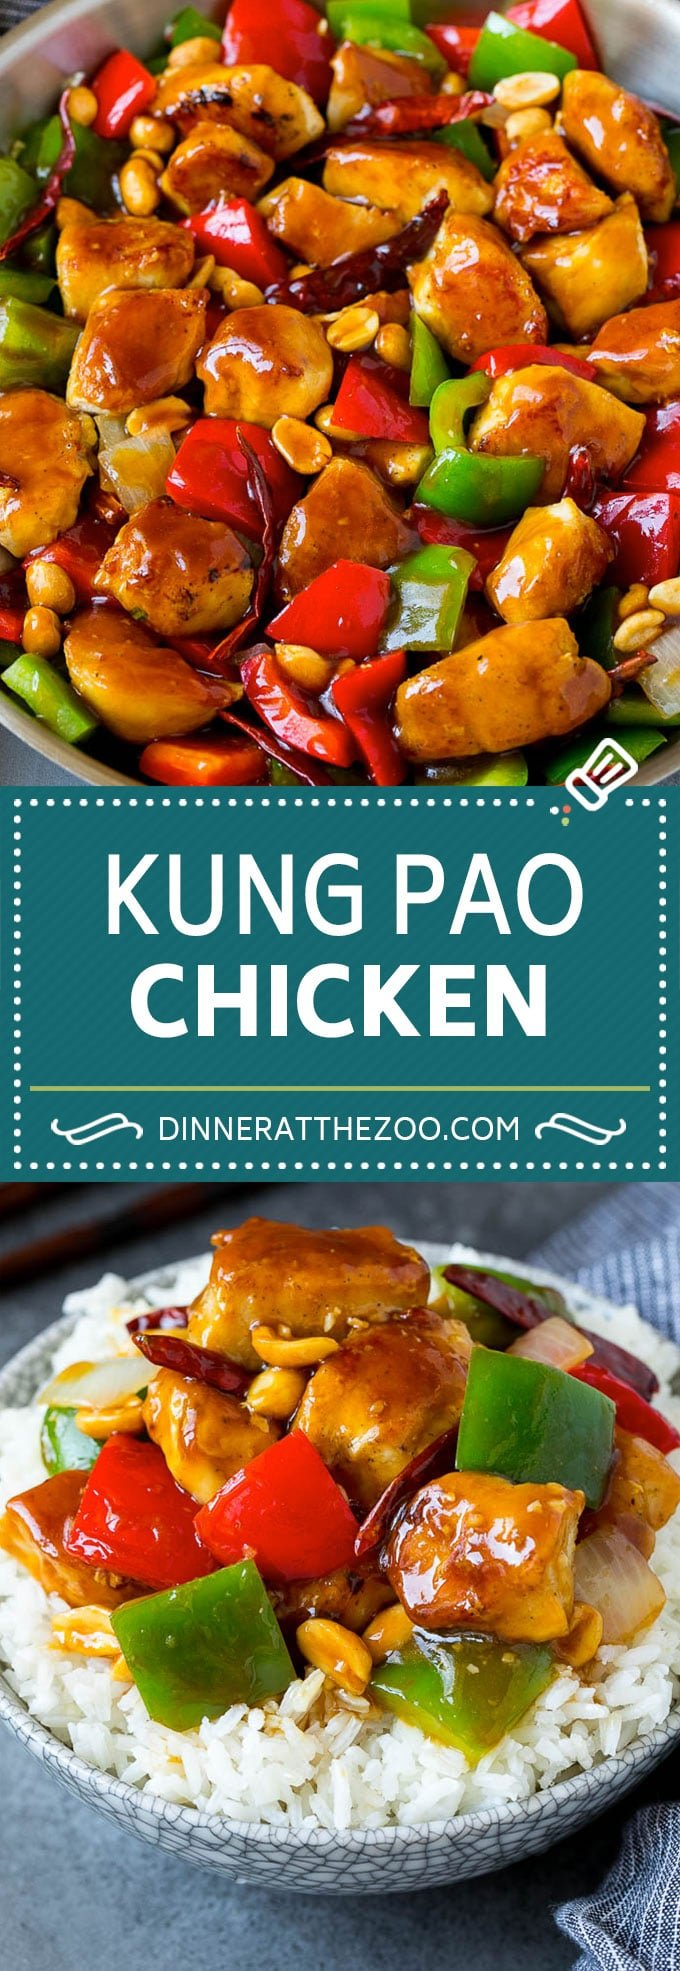 Kung Pao Chicken Recipe | Chicken Stir Fry #chicken #stirfry #chinesefood #peanuts #peppers #dinner #dinneratthezoo